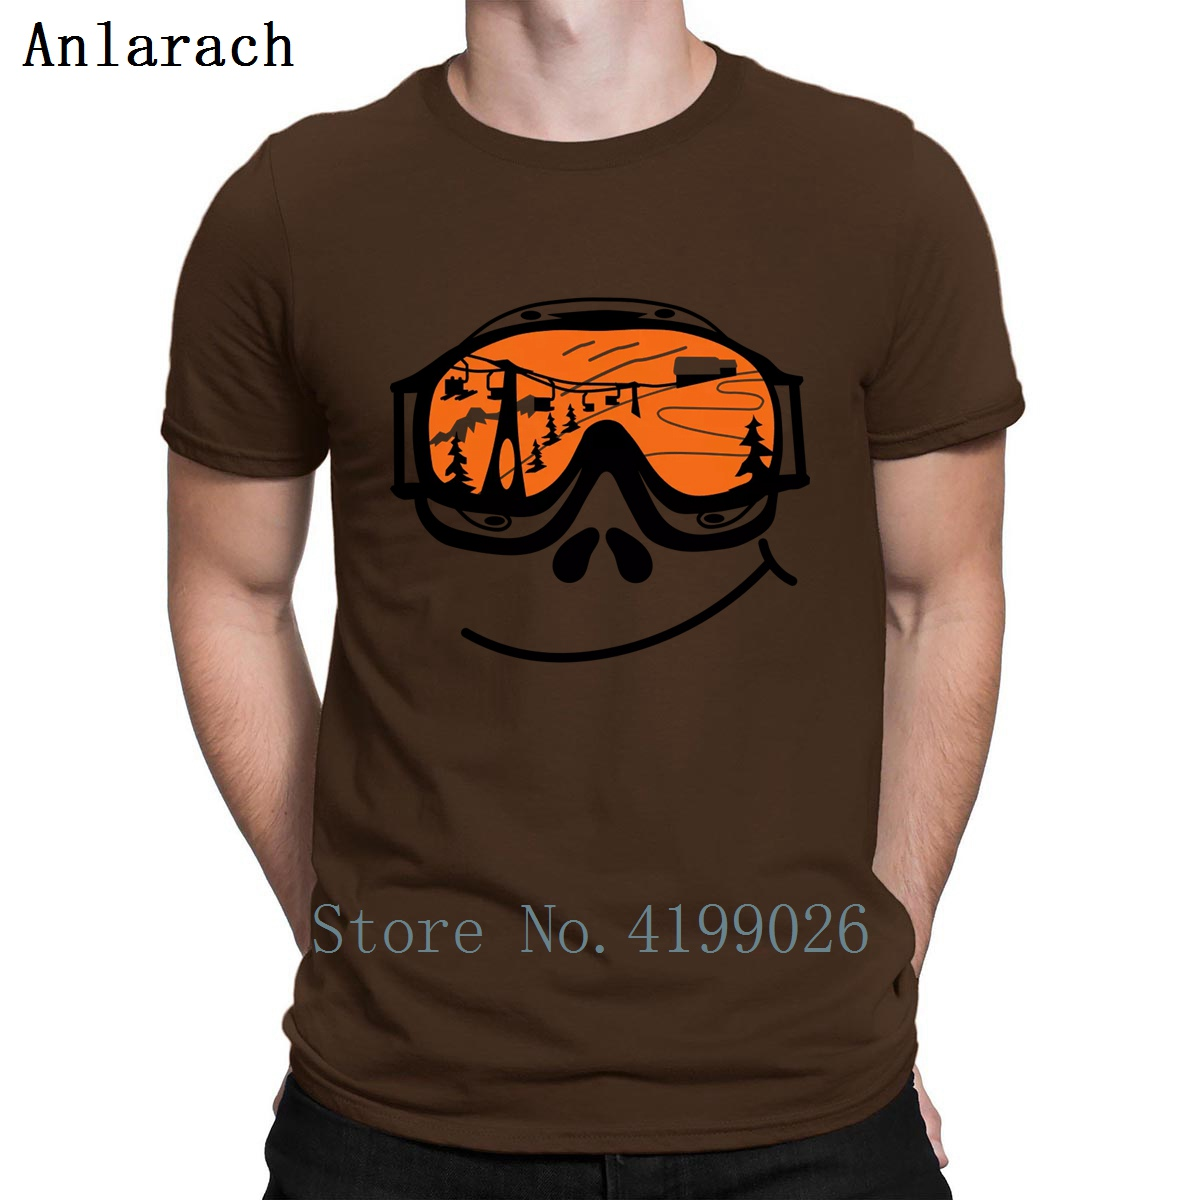 Ski Goggles Tshirt Tops Custom Anti-Wrinkle Comfortable Clothing T Shirt Letter Spring Size S-3xl